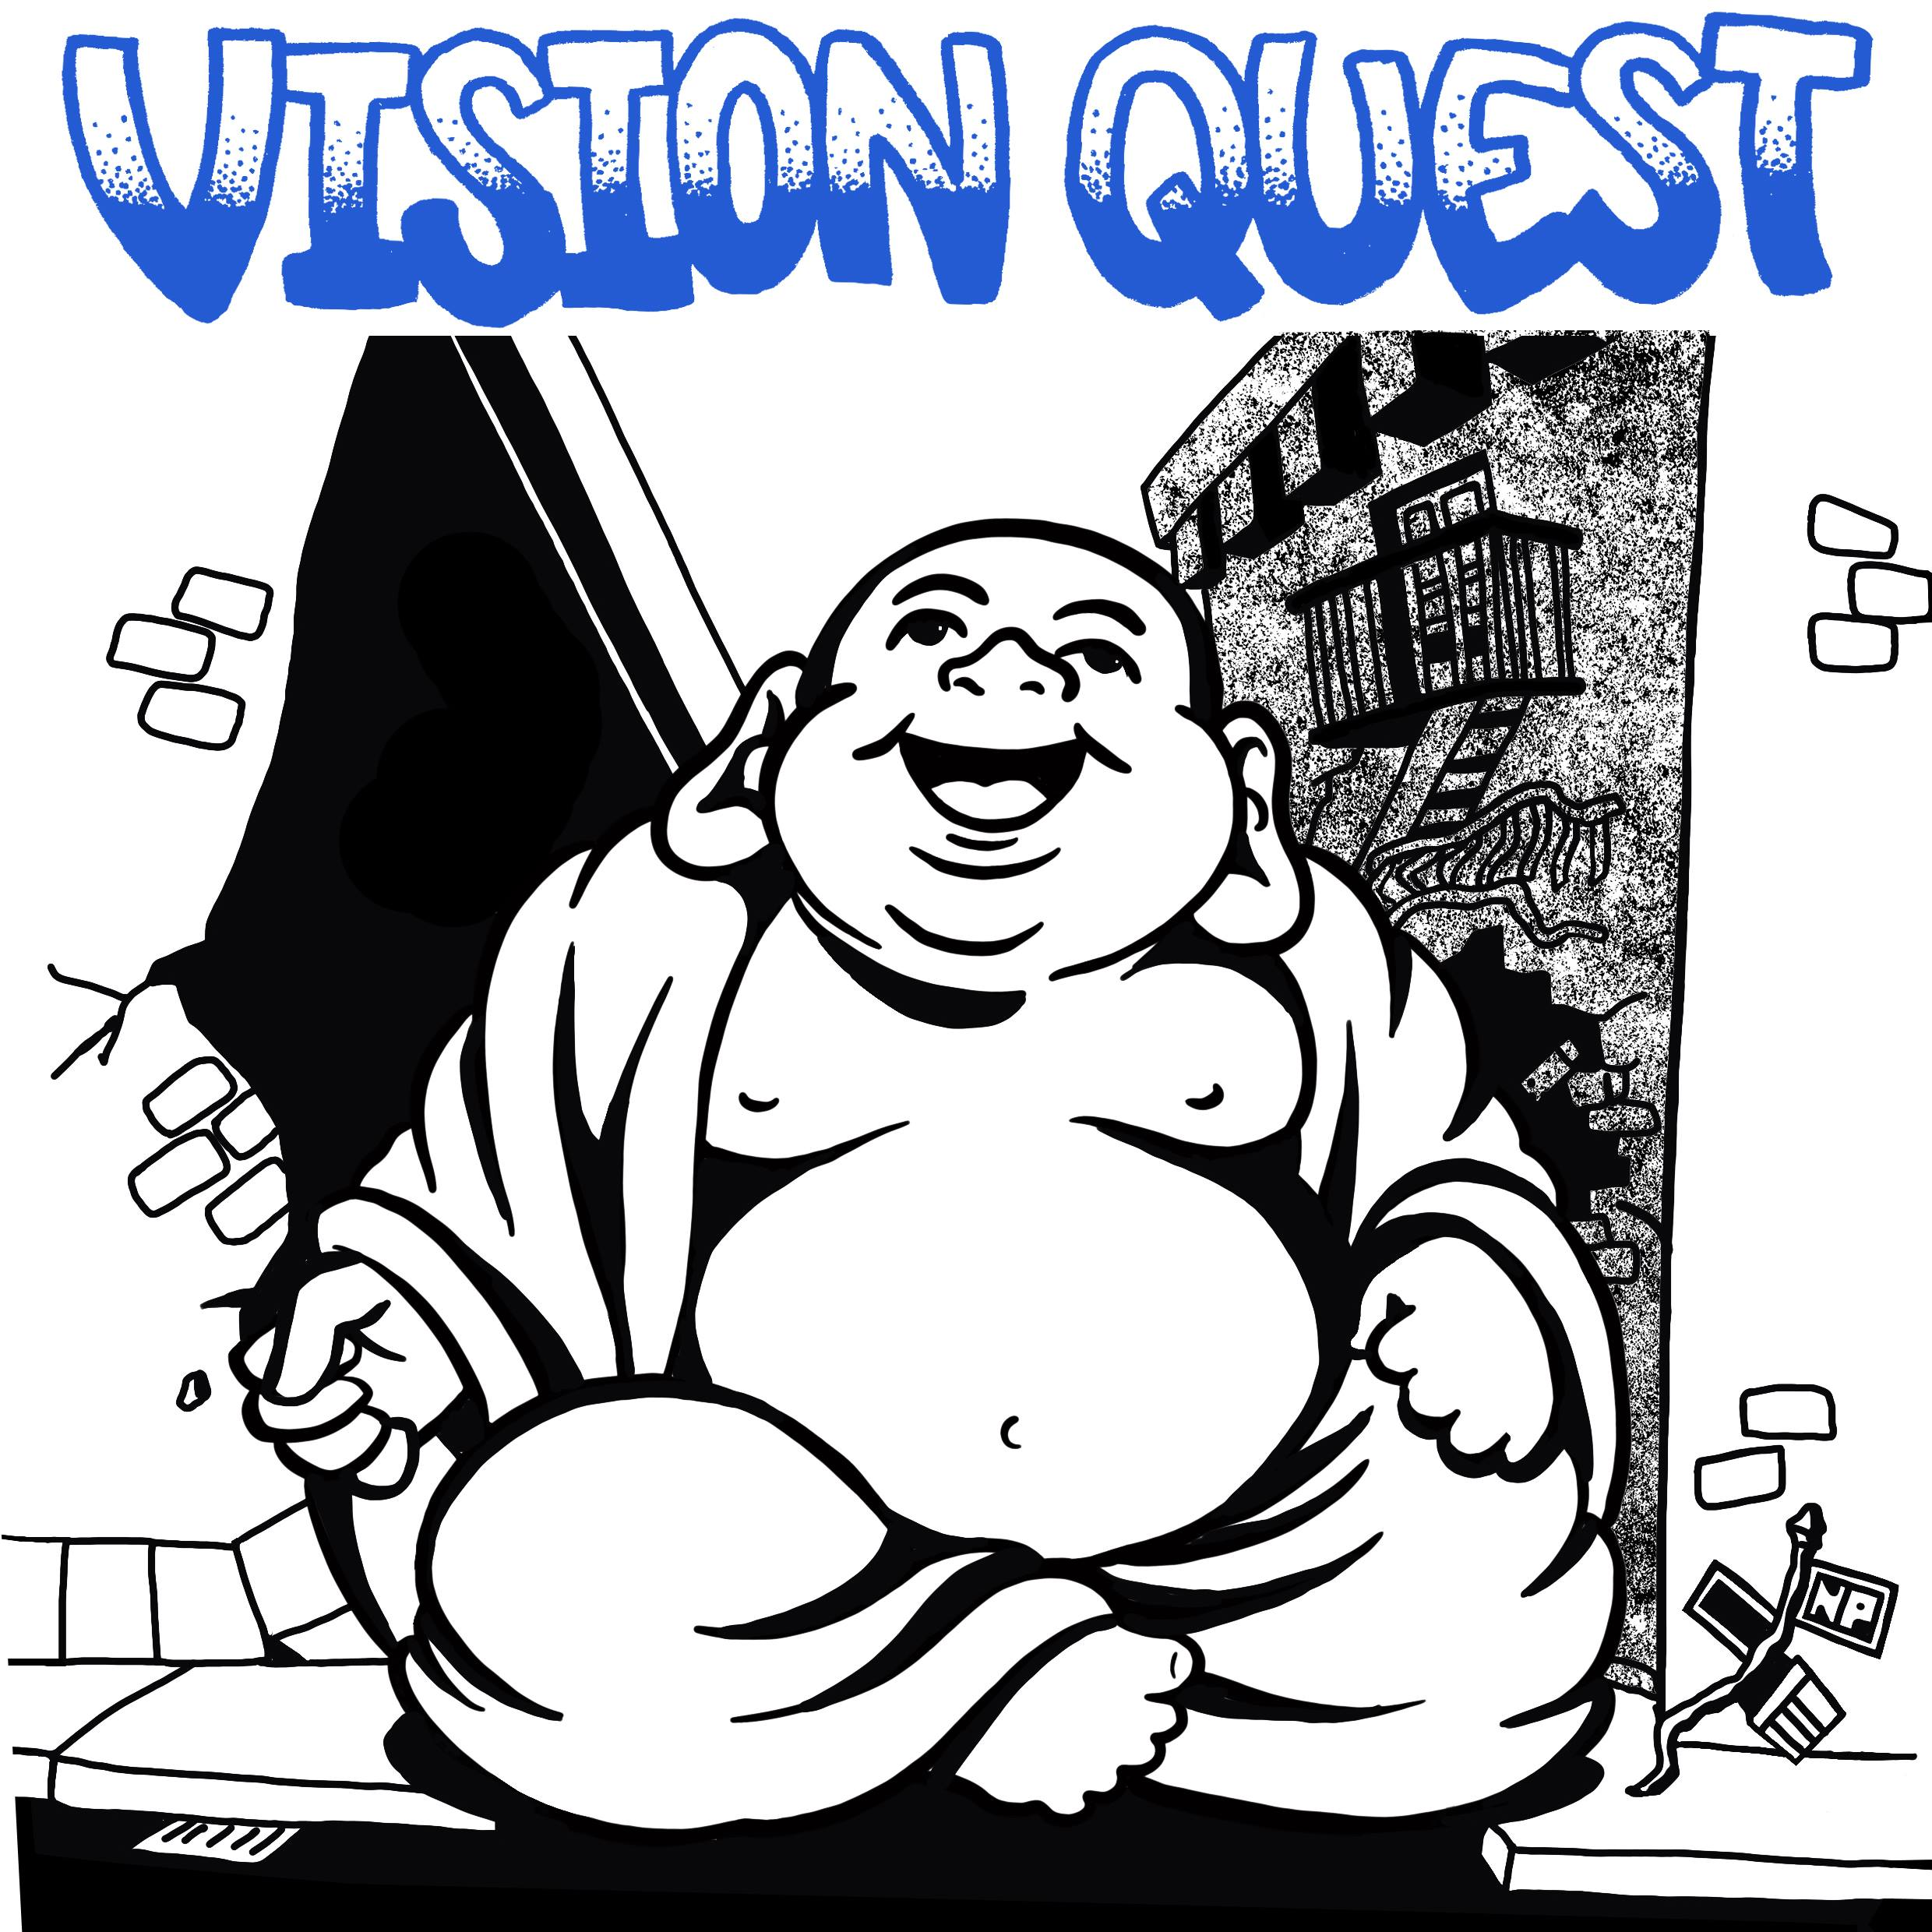 Vision Quest - Self Titled